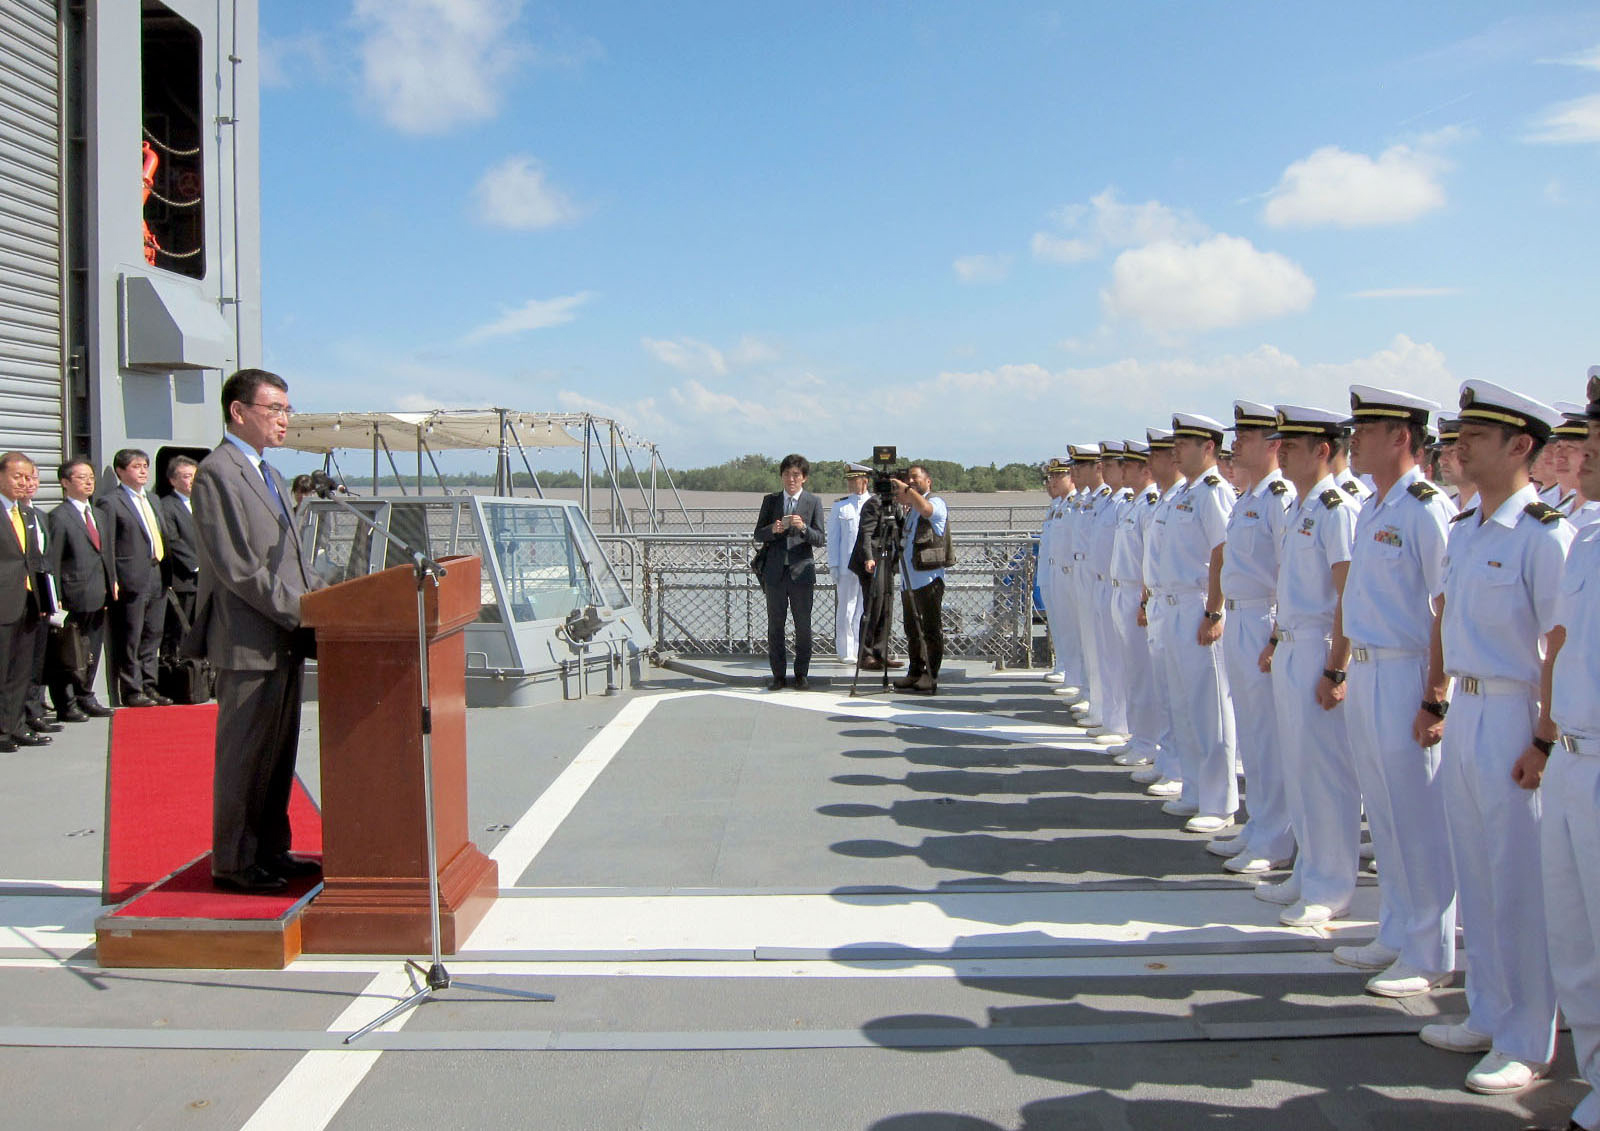 Foreign Minister Taro Kono addresses the crew of the Maritime Self-Defense Force destroyer Yamagiri in Singapore on Sunday. Kono emphasized Japan's interest in ensuring the South China Sea remains 'free and open.' | KYODO